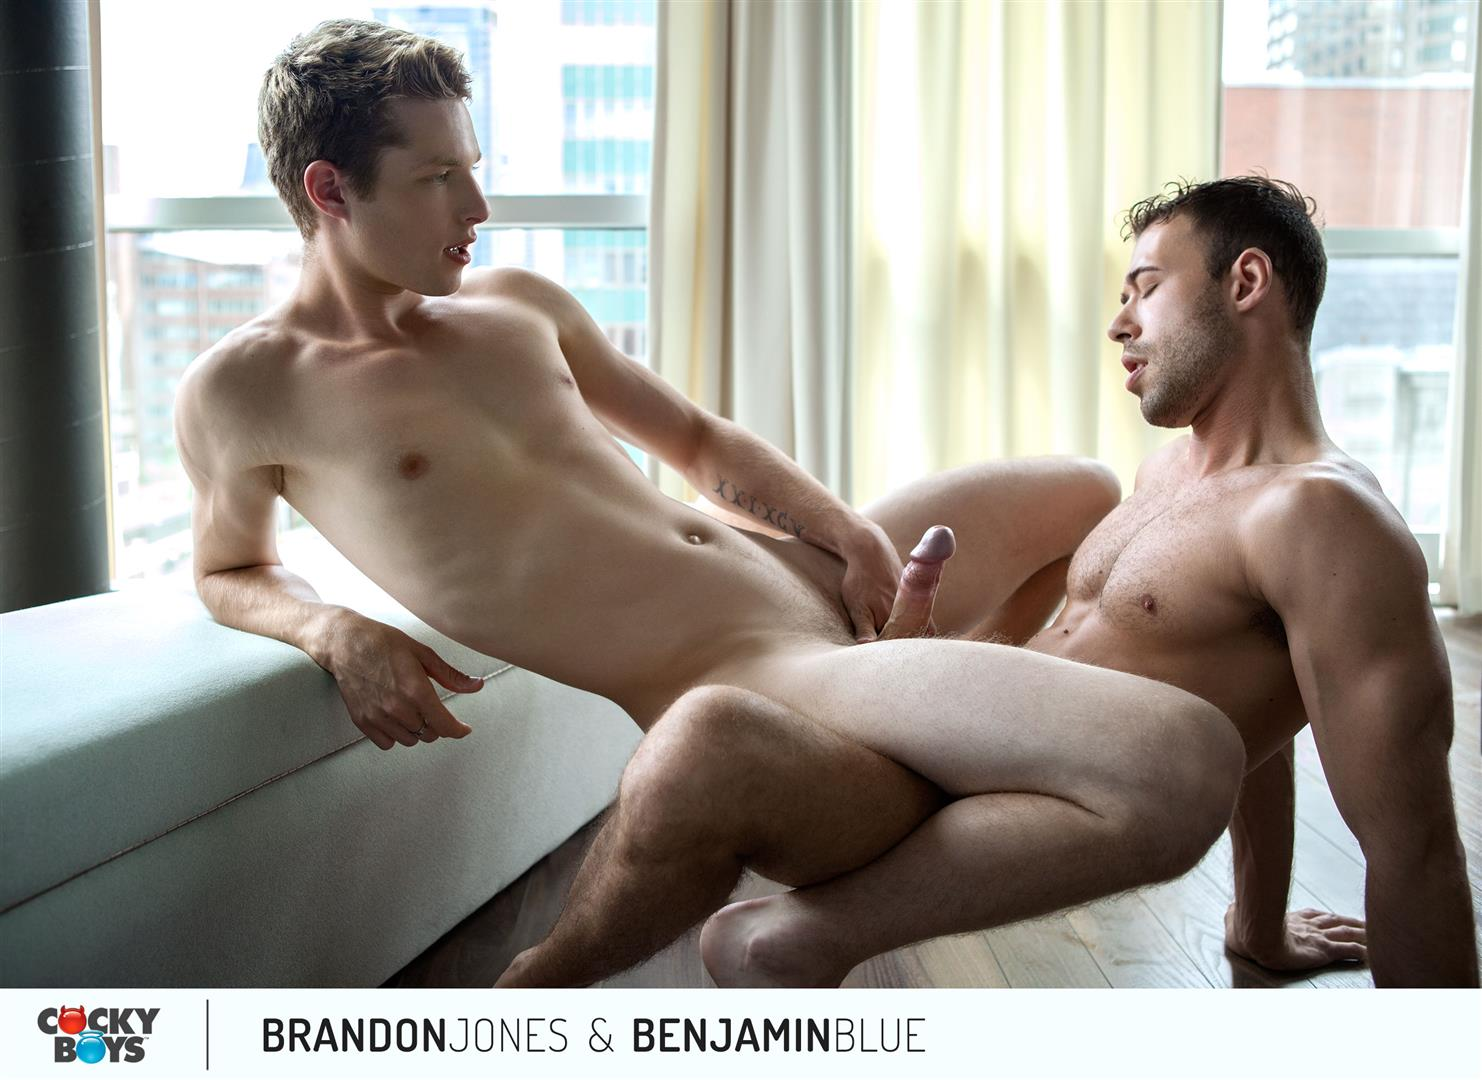 Cockyboys Benjamin Blue and Brandon Jones Flip Flop Fuck Amateur Gay Porn 23 Cockyboys: Benjamin Blue Tops Brandon Jones For The First Time